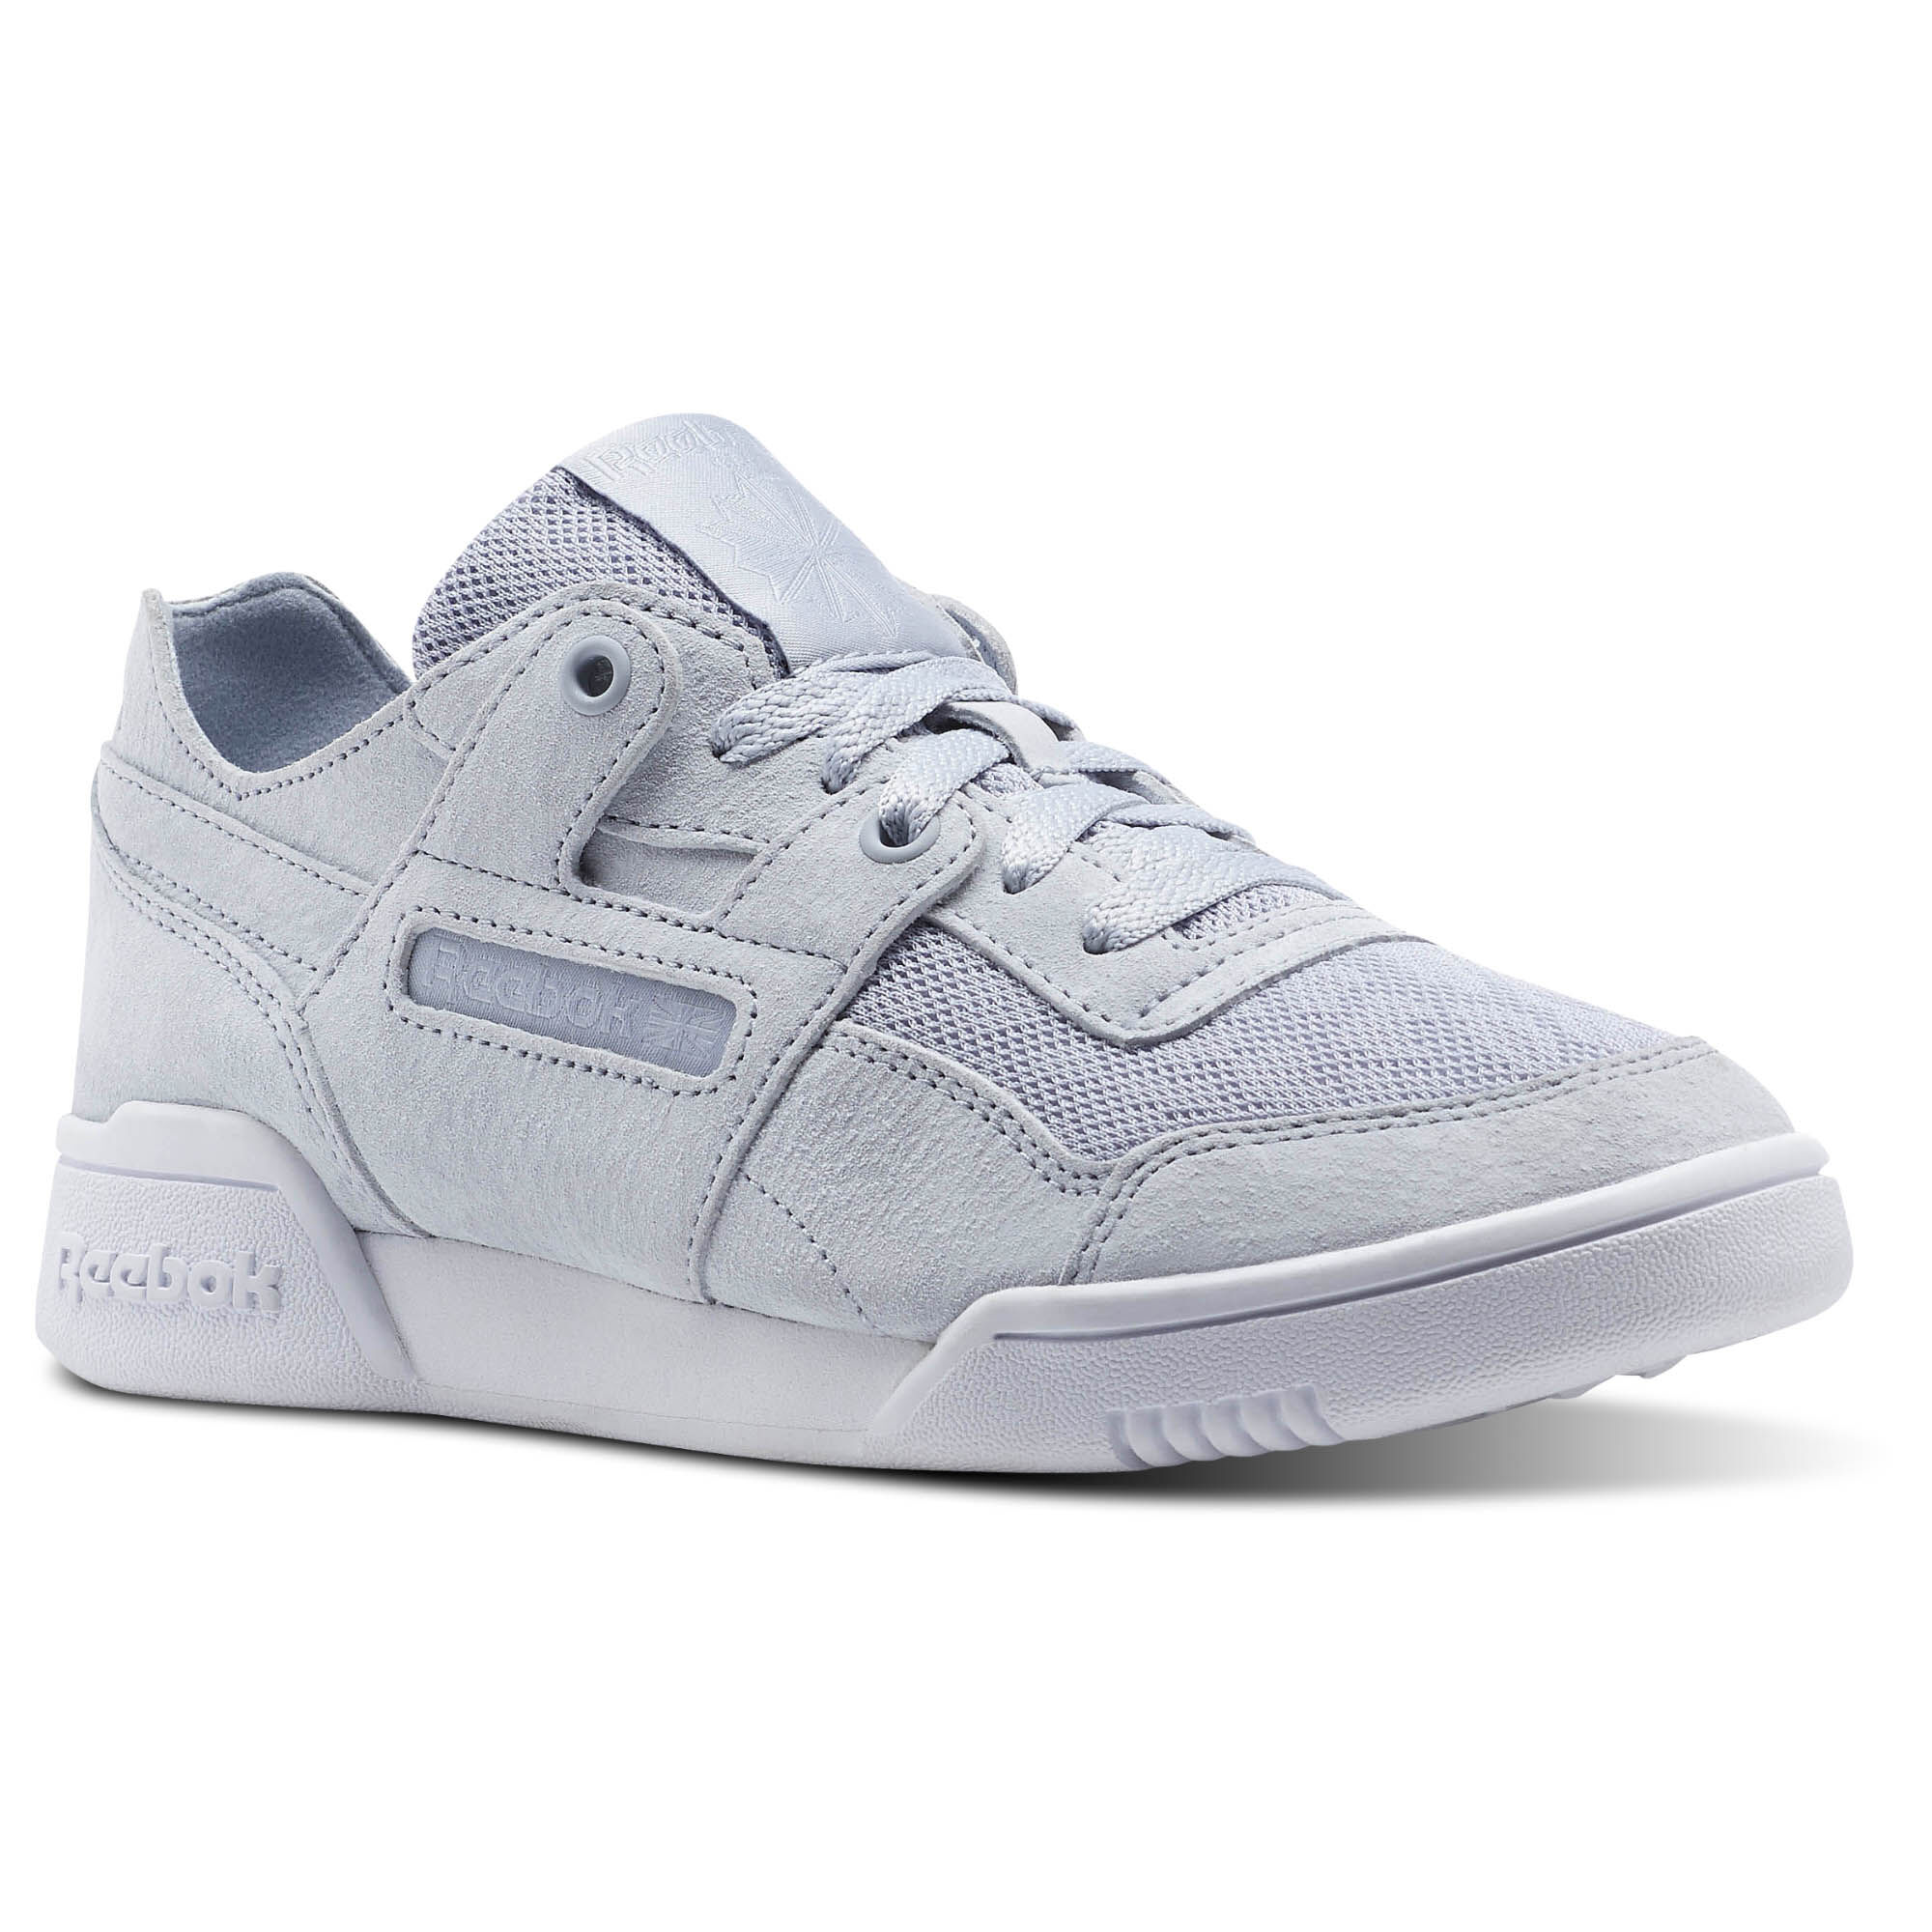 Reebok WORKOUT LO PLUS D'origine Pas Cher ySI6PQim